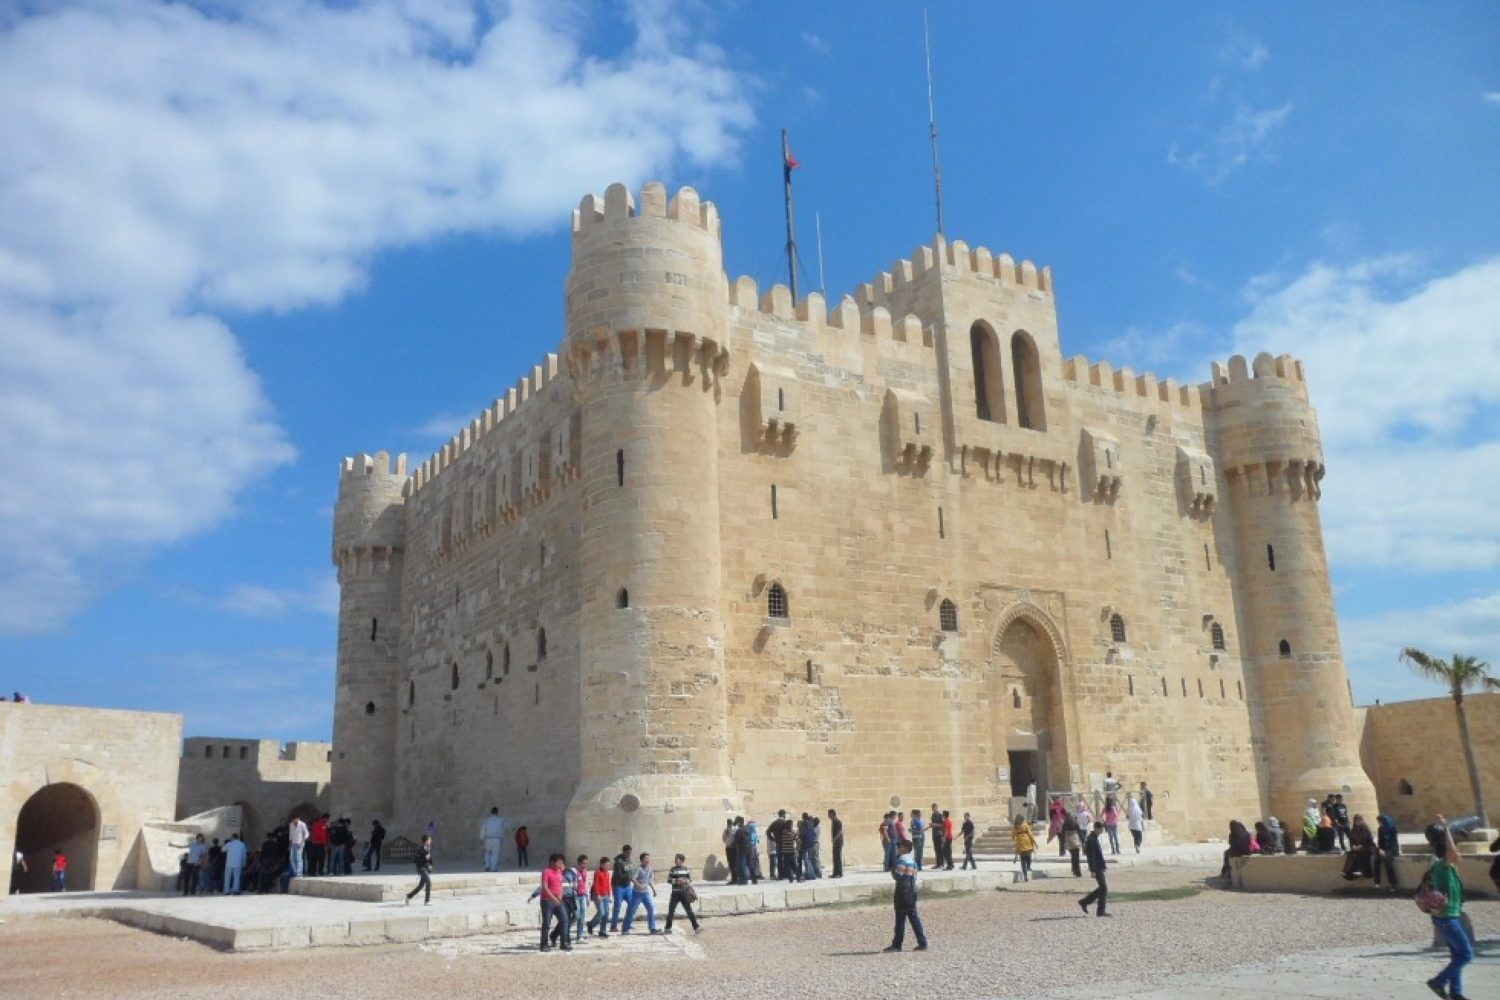 alexandria, Quitbay citadel, day trip to alexandria from cairo